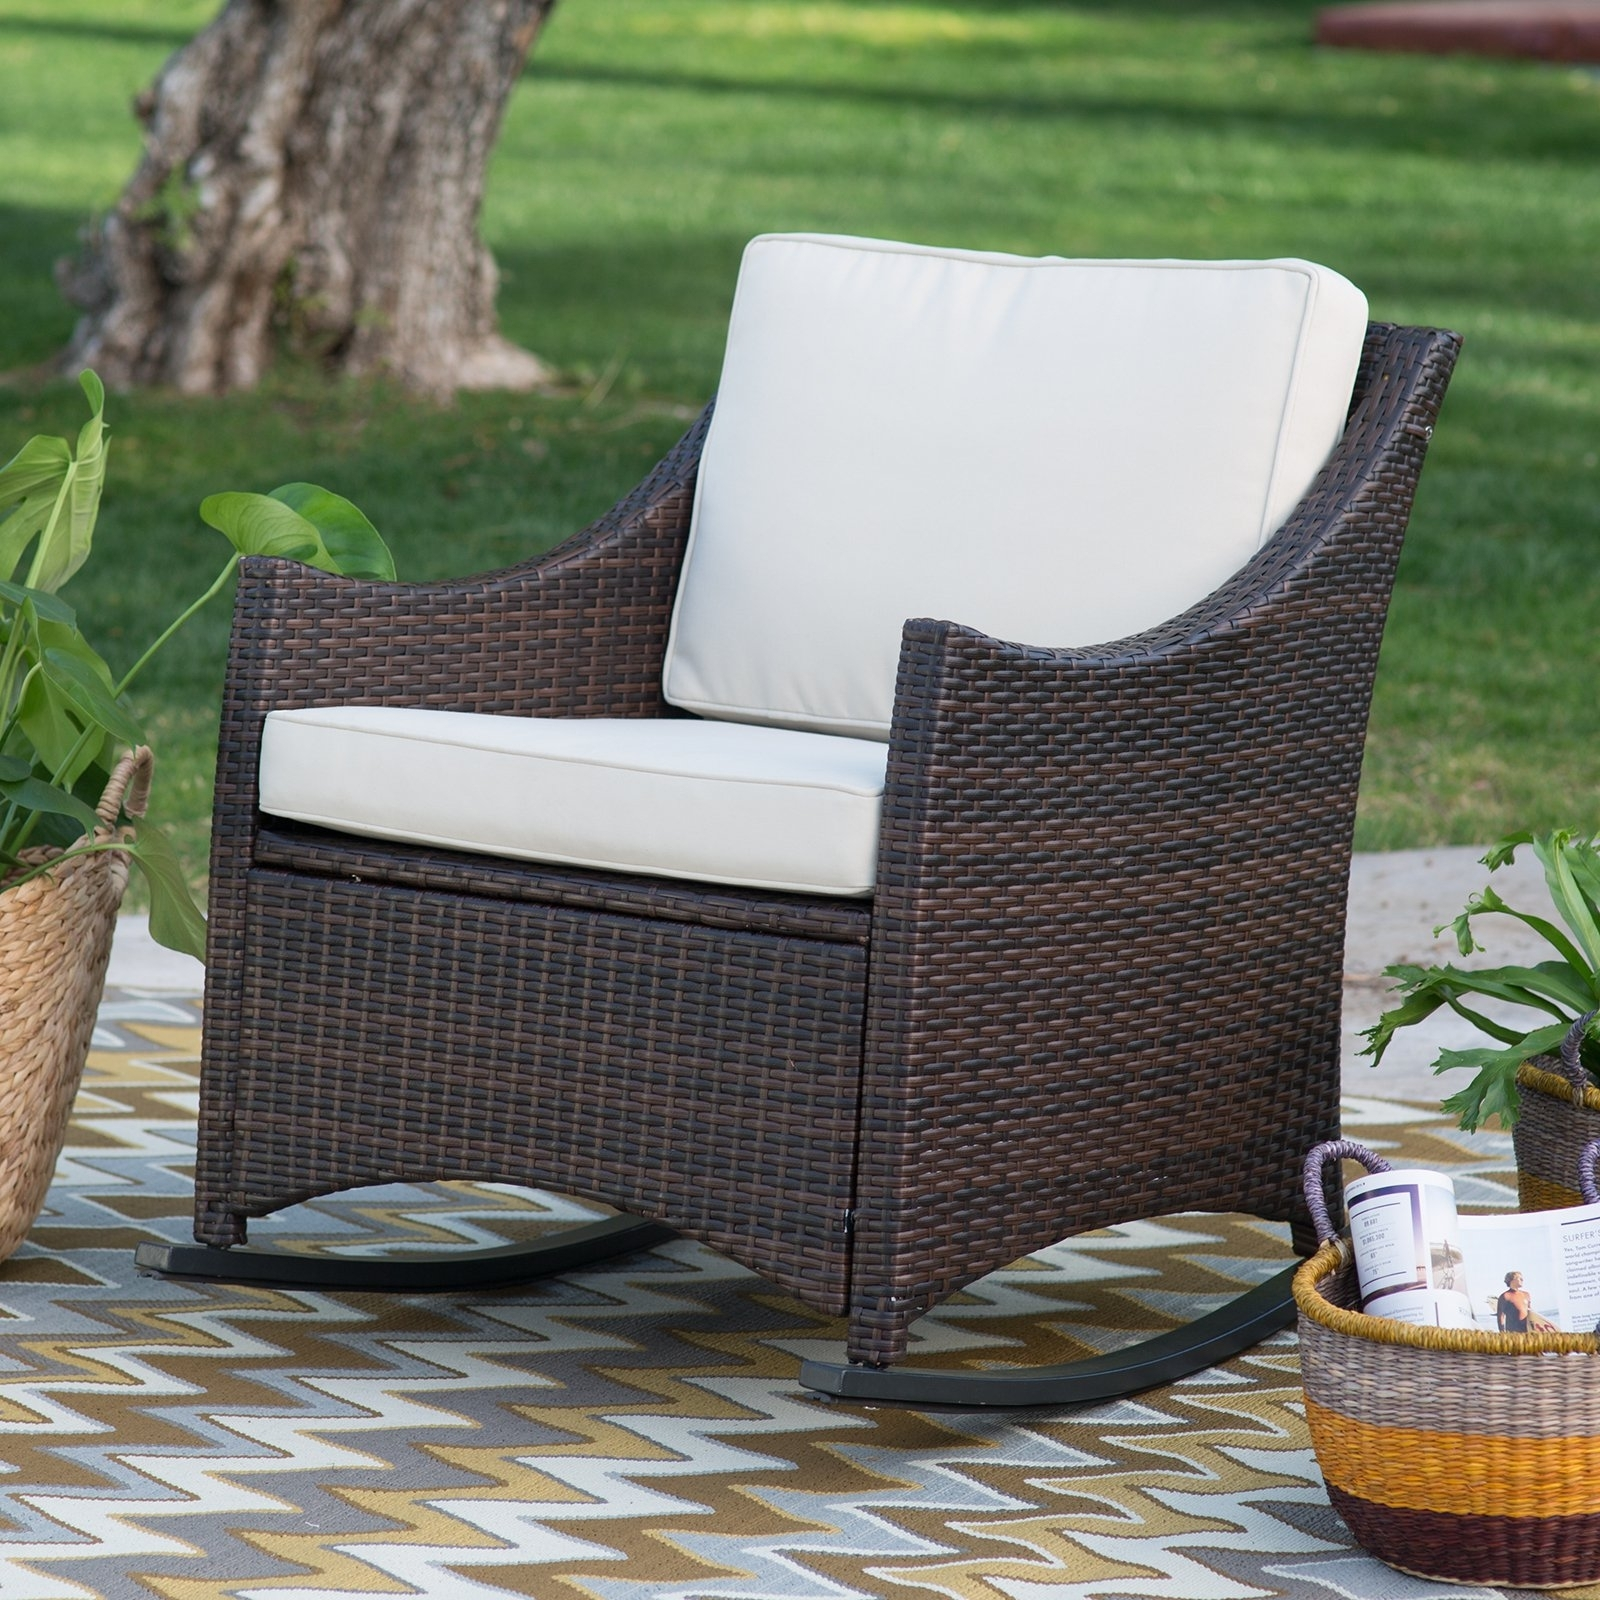 Chair | Outdoor Rocking Chairs For Sale Traditional Rocking Chair With Wicker Rocking Chairs For Outdoors (View 7 of 15)